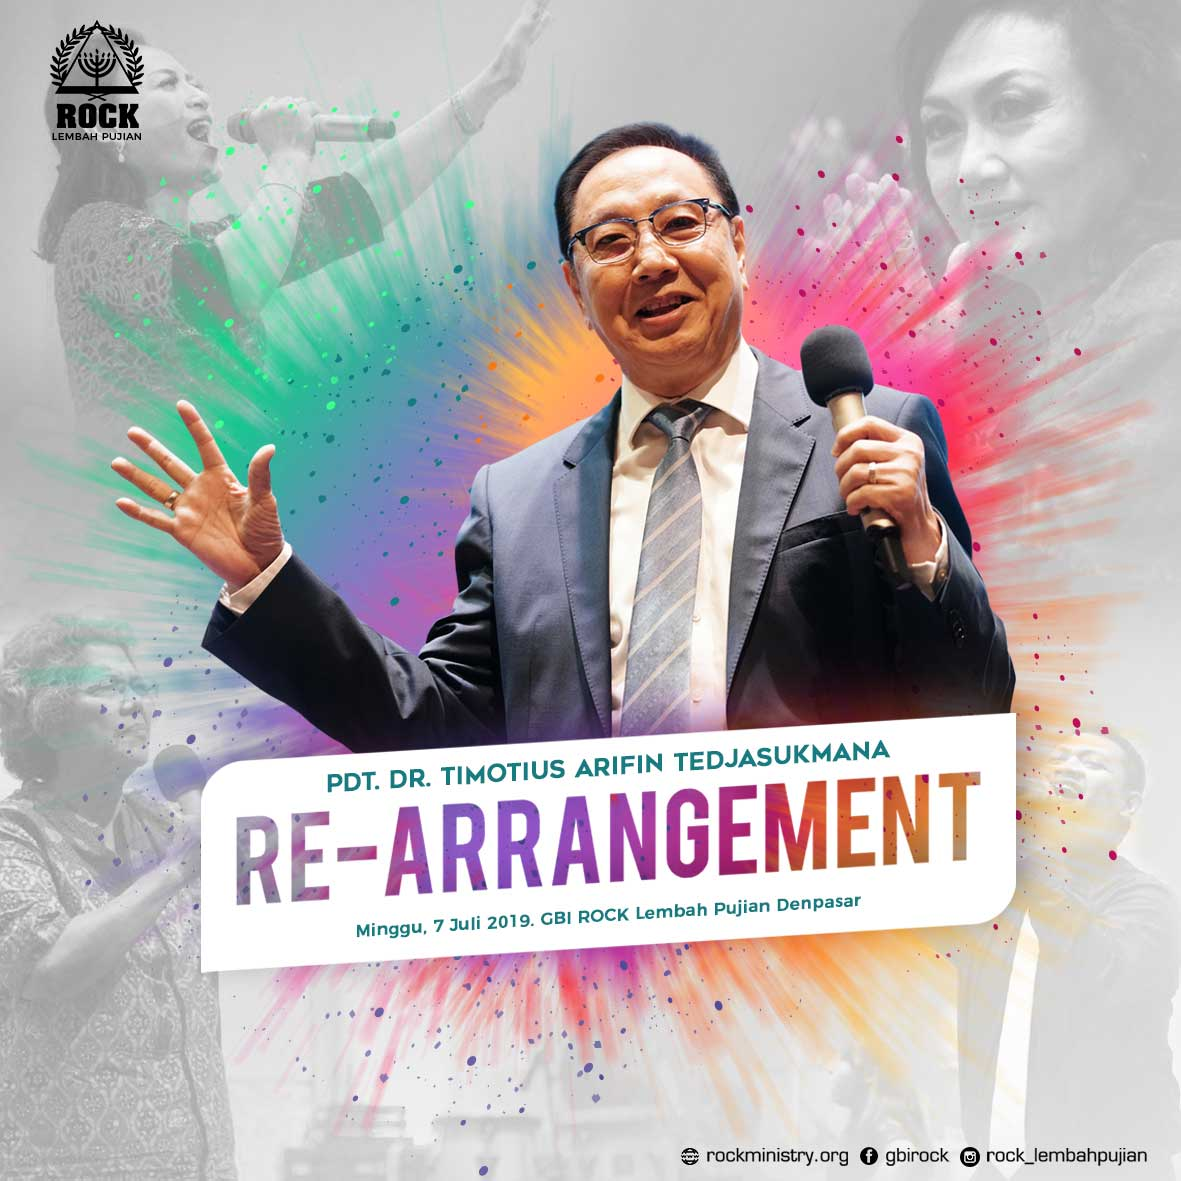 RE-ARRANGEMENT | Pdt. Dr. Timotius Arifin Tedjasukmana